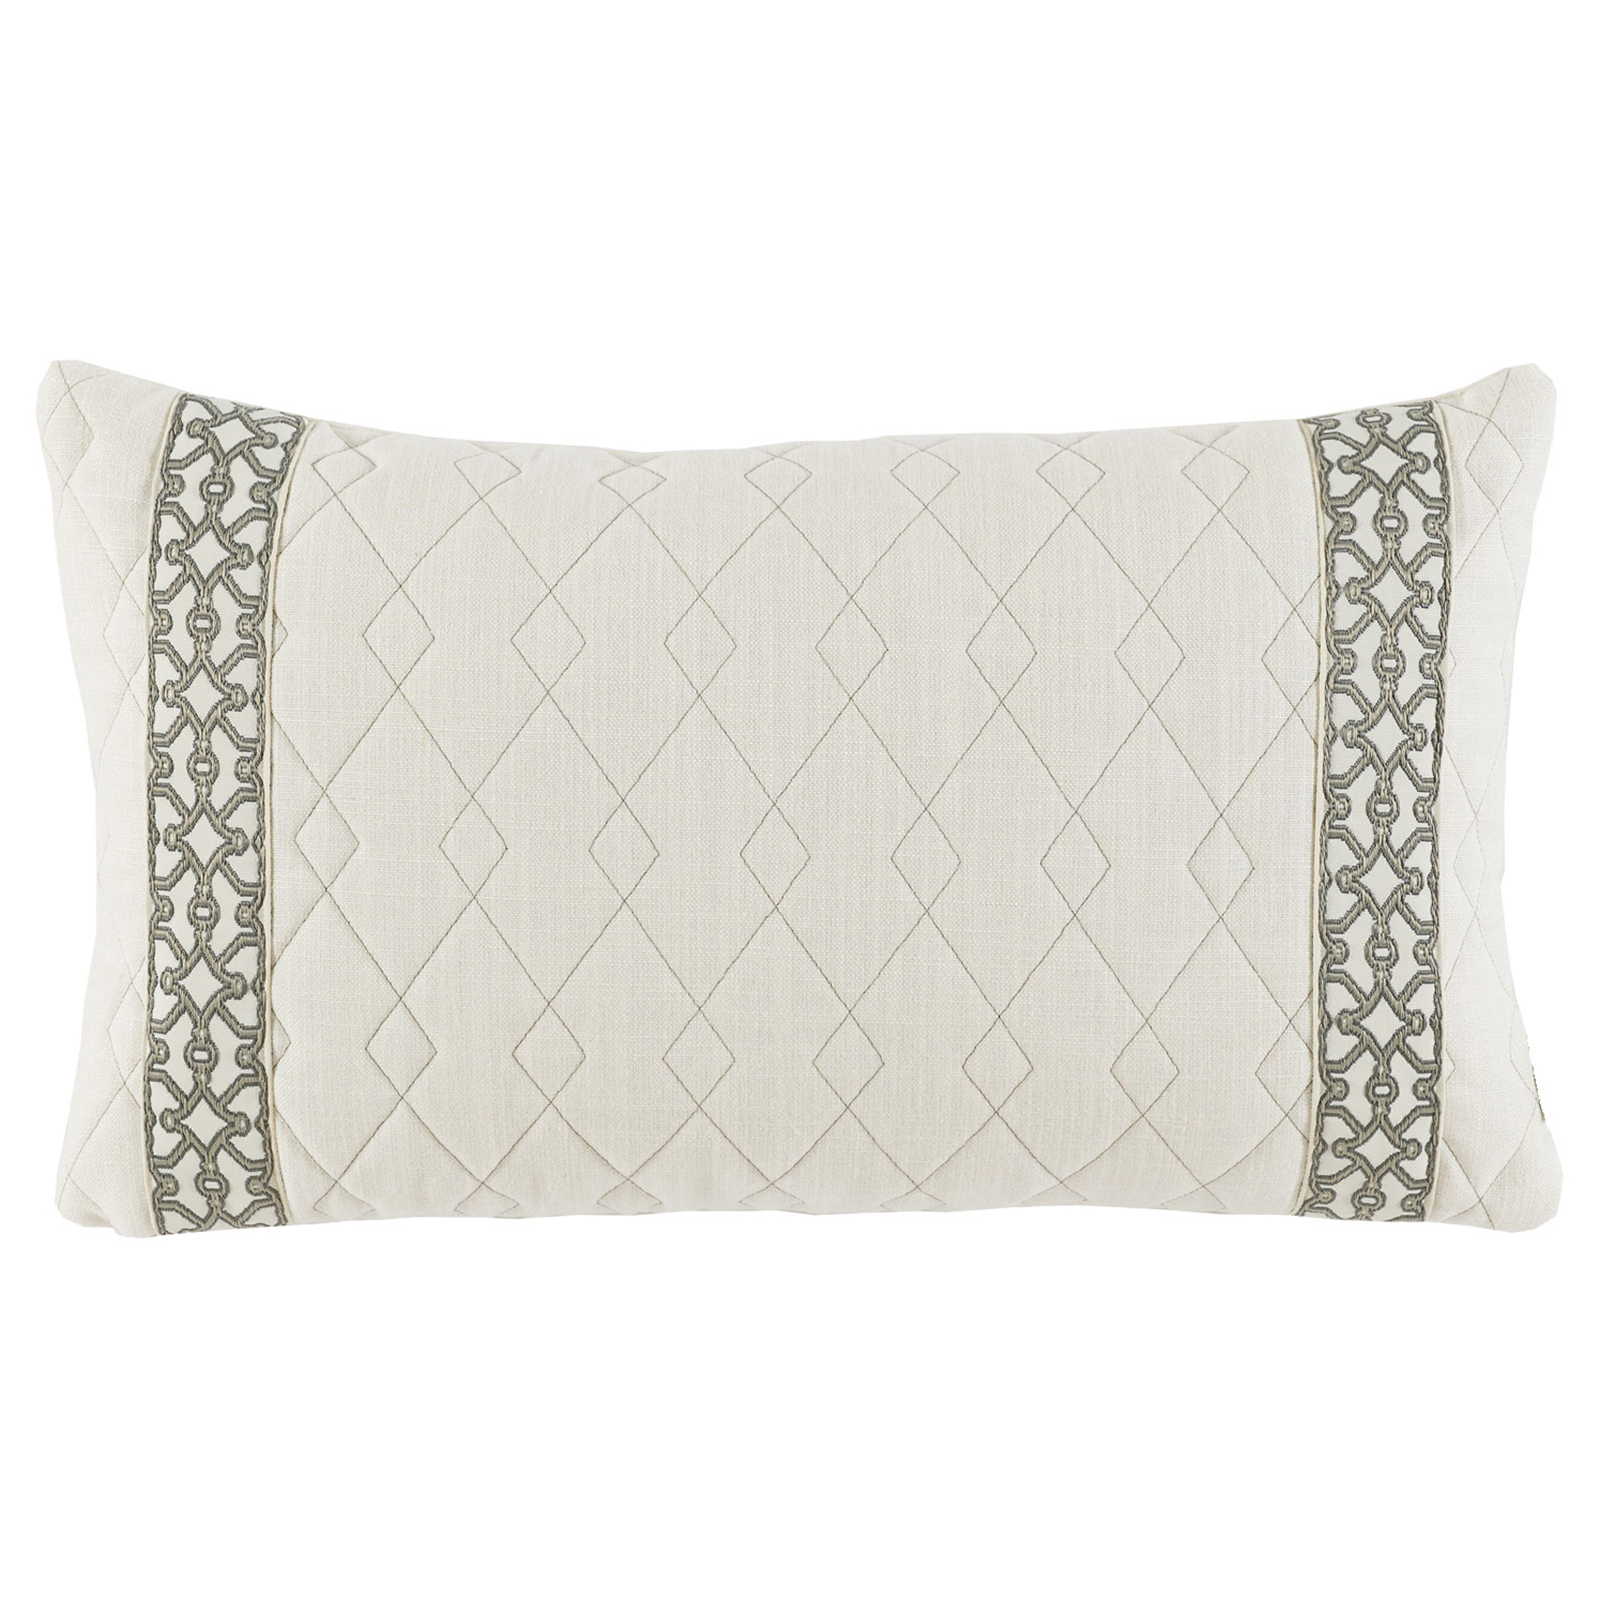 Dori Modern Classic Diamond Quilt Ivory Trim Pillow - 13x22